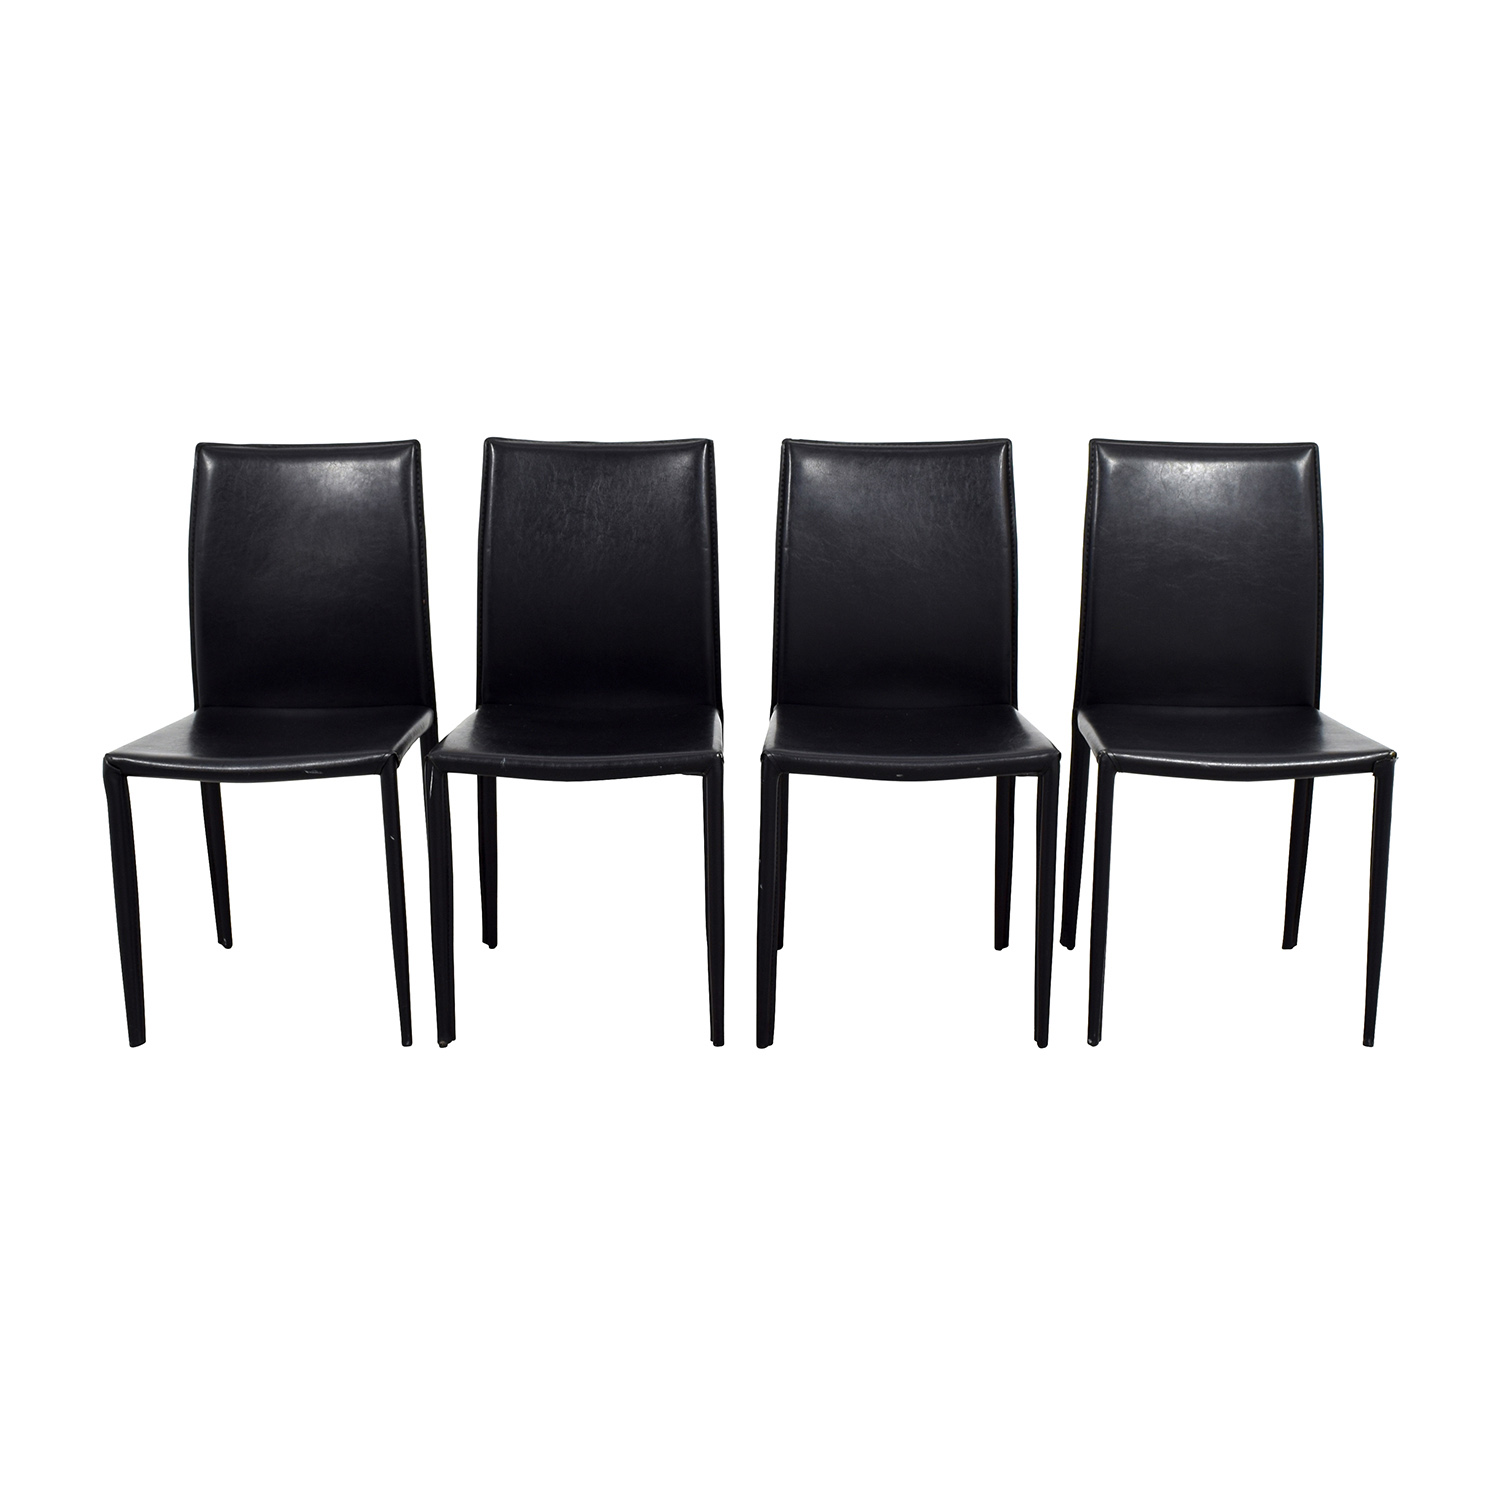 avery leather products tov armchair chair minimal modern black furniture